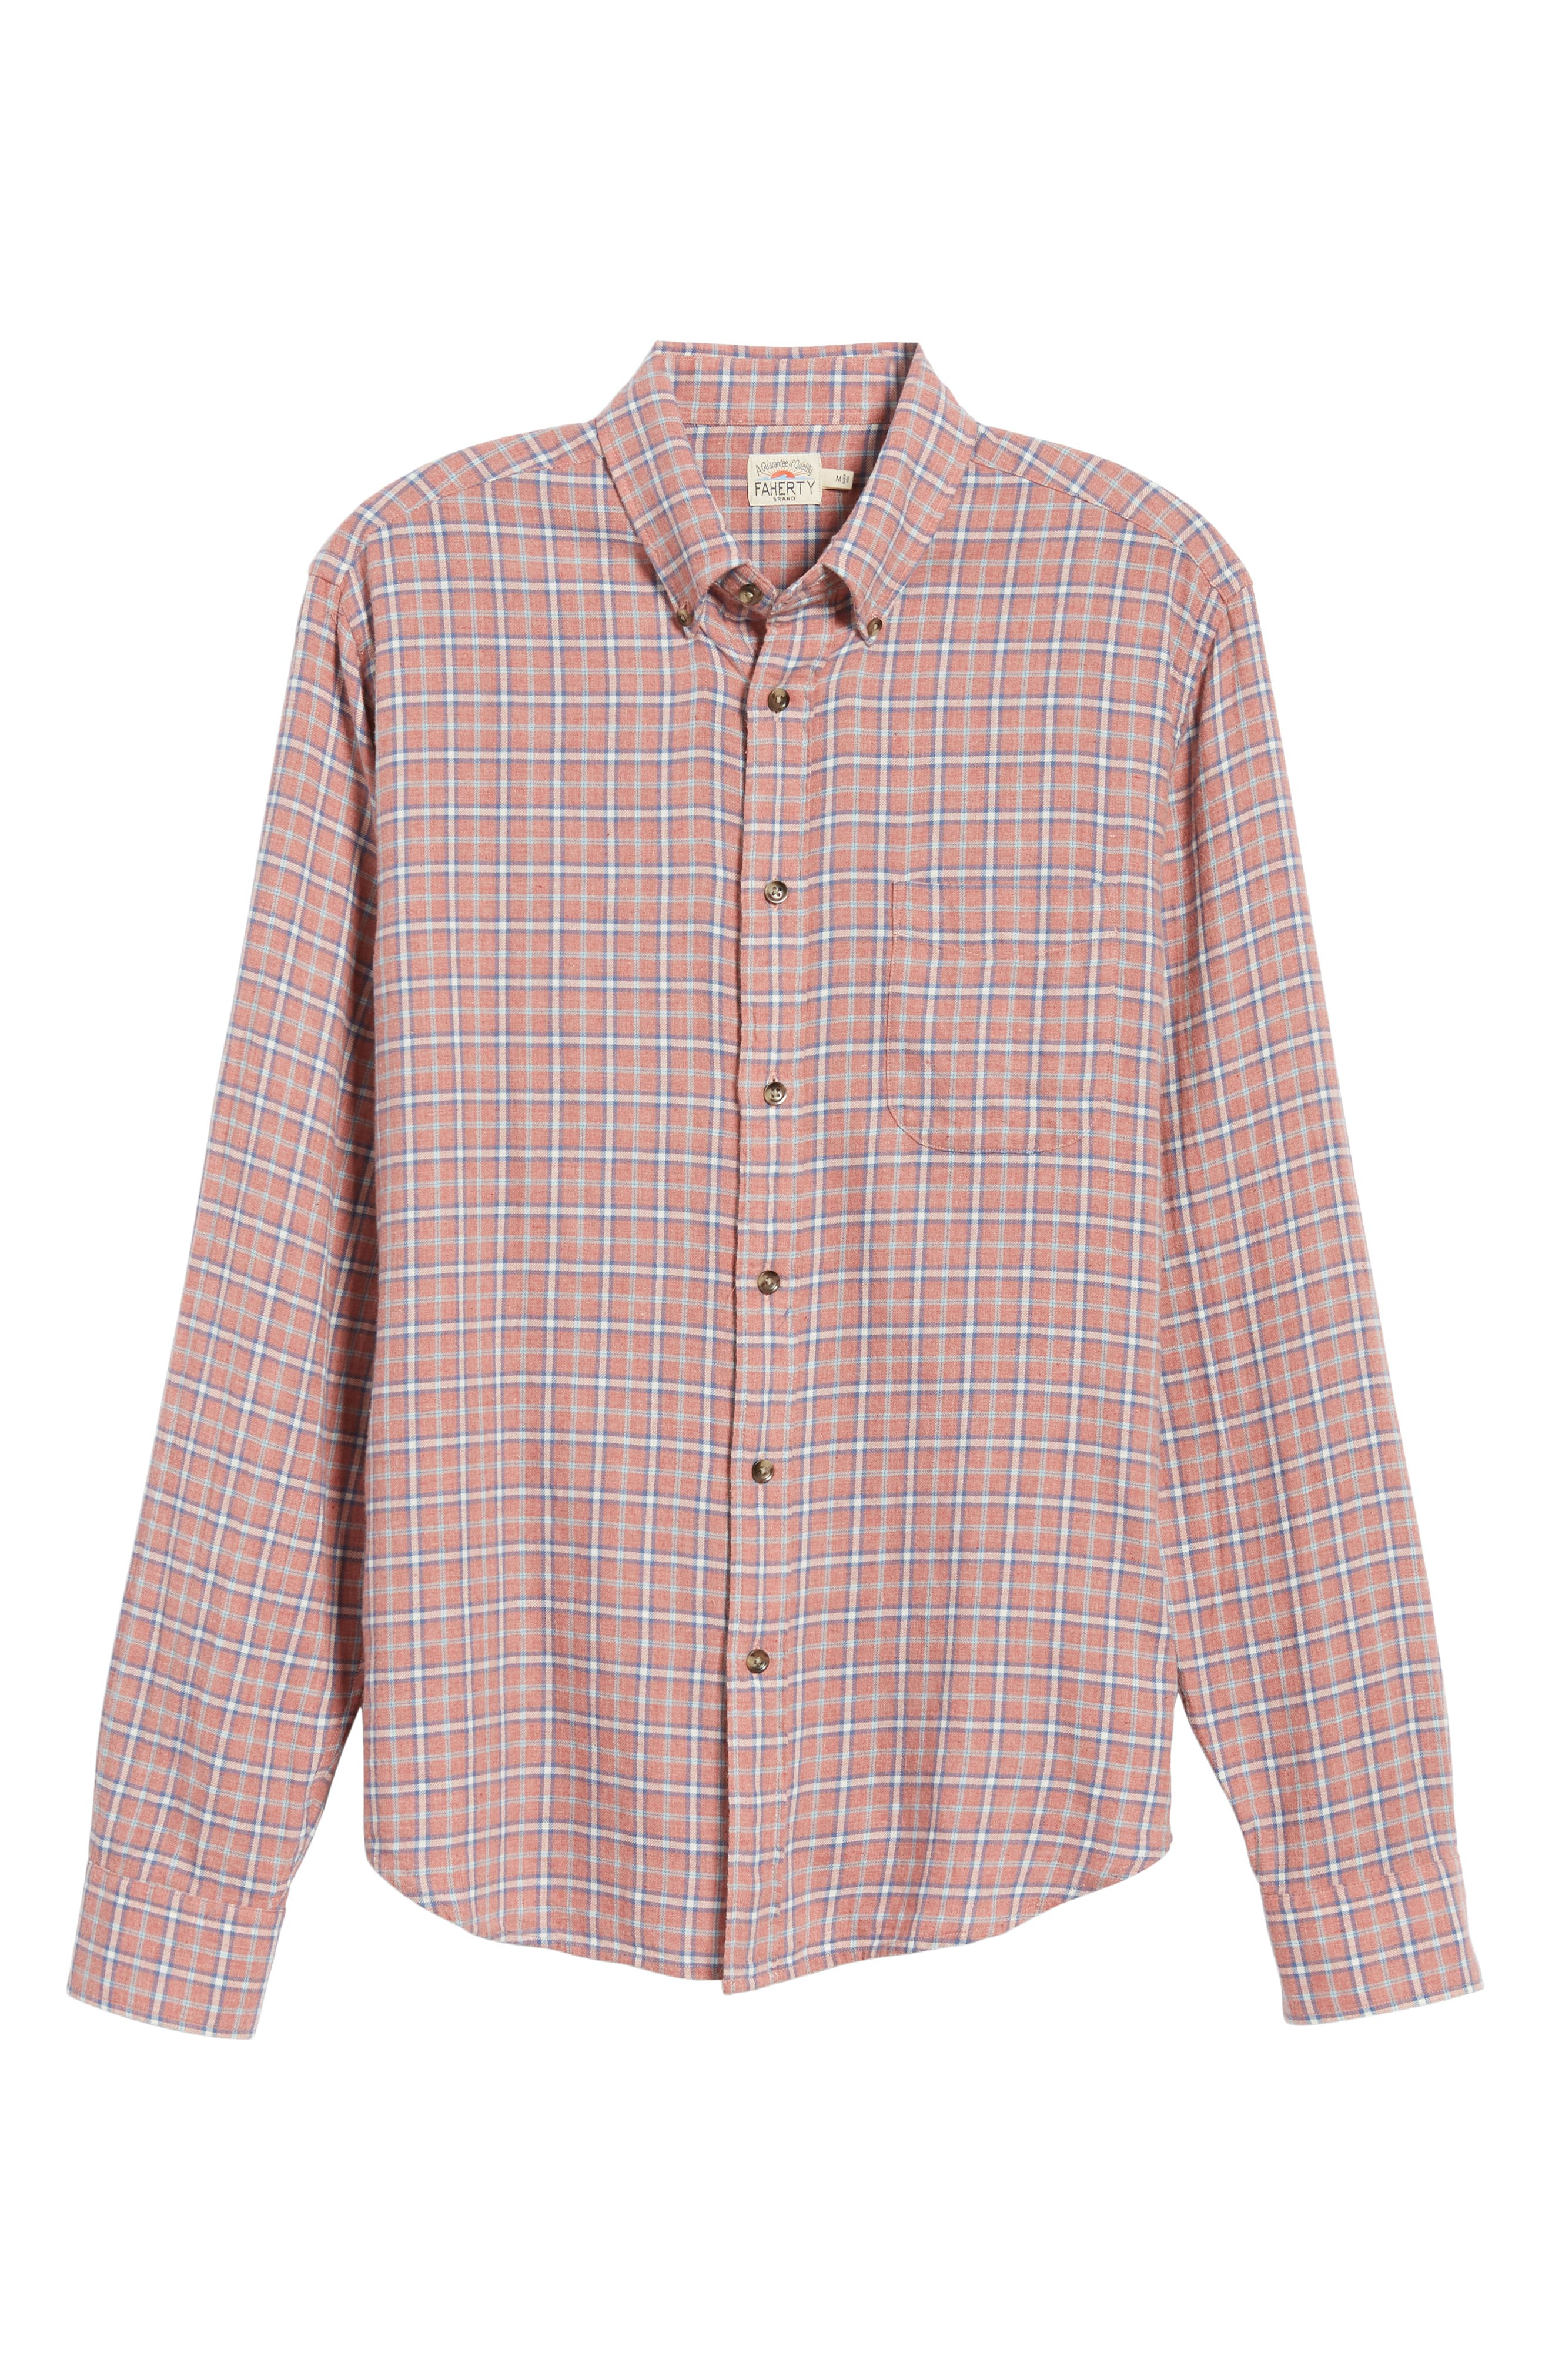 Pacific Check Organic Cotton Sport Shirt,                             Alternate thumbnail 5, color,                             HEATHER RED MULTI